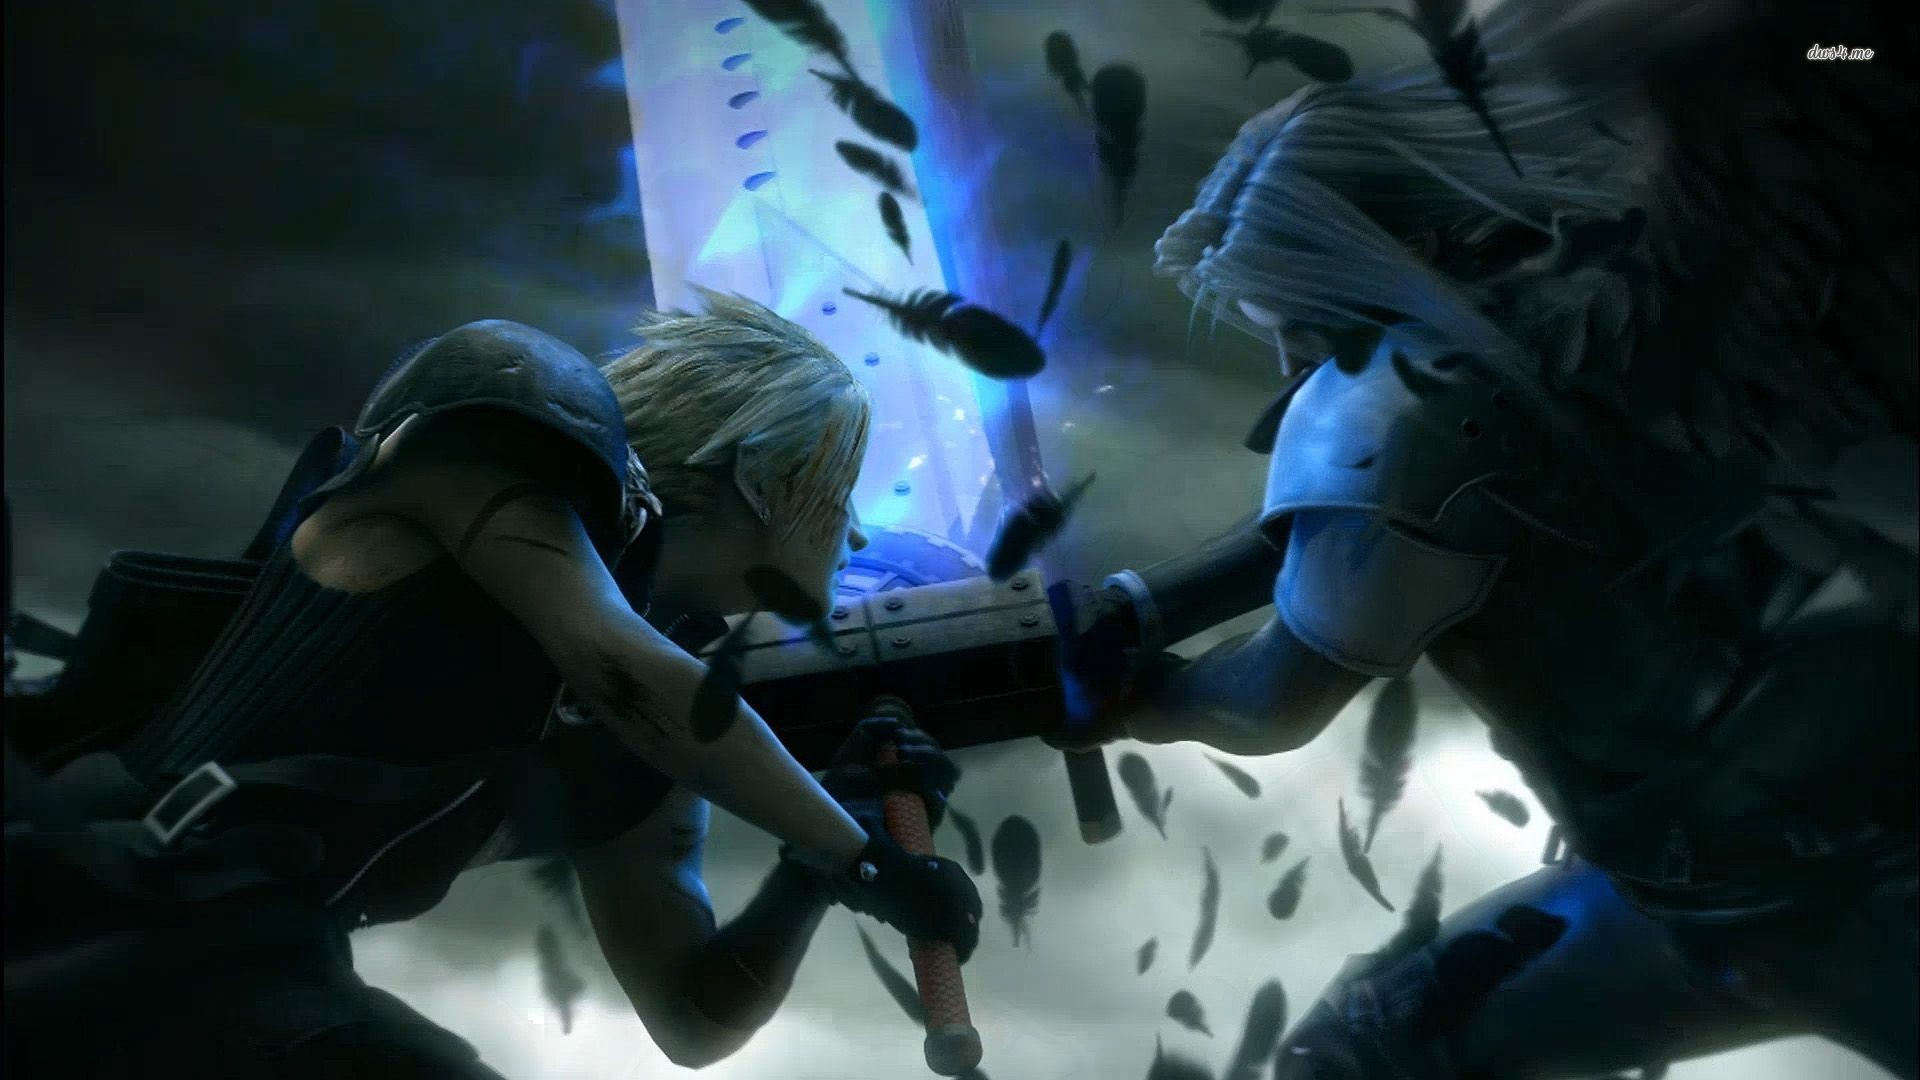 1920x1080 Download Final Fantasy Vii Advent Children wallpaper 270389